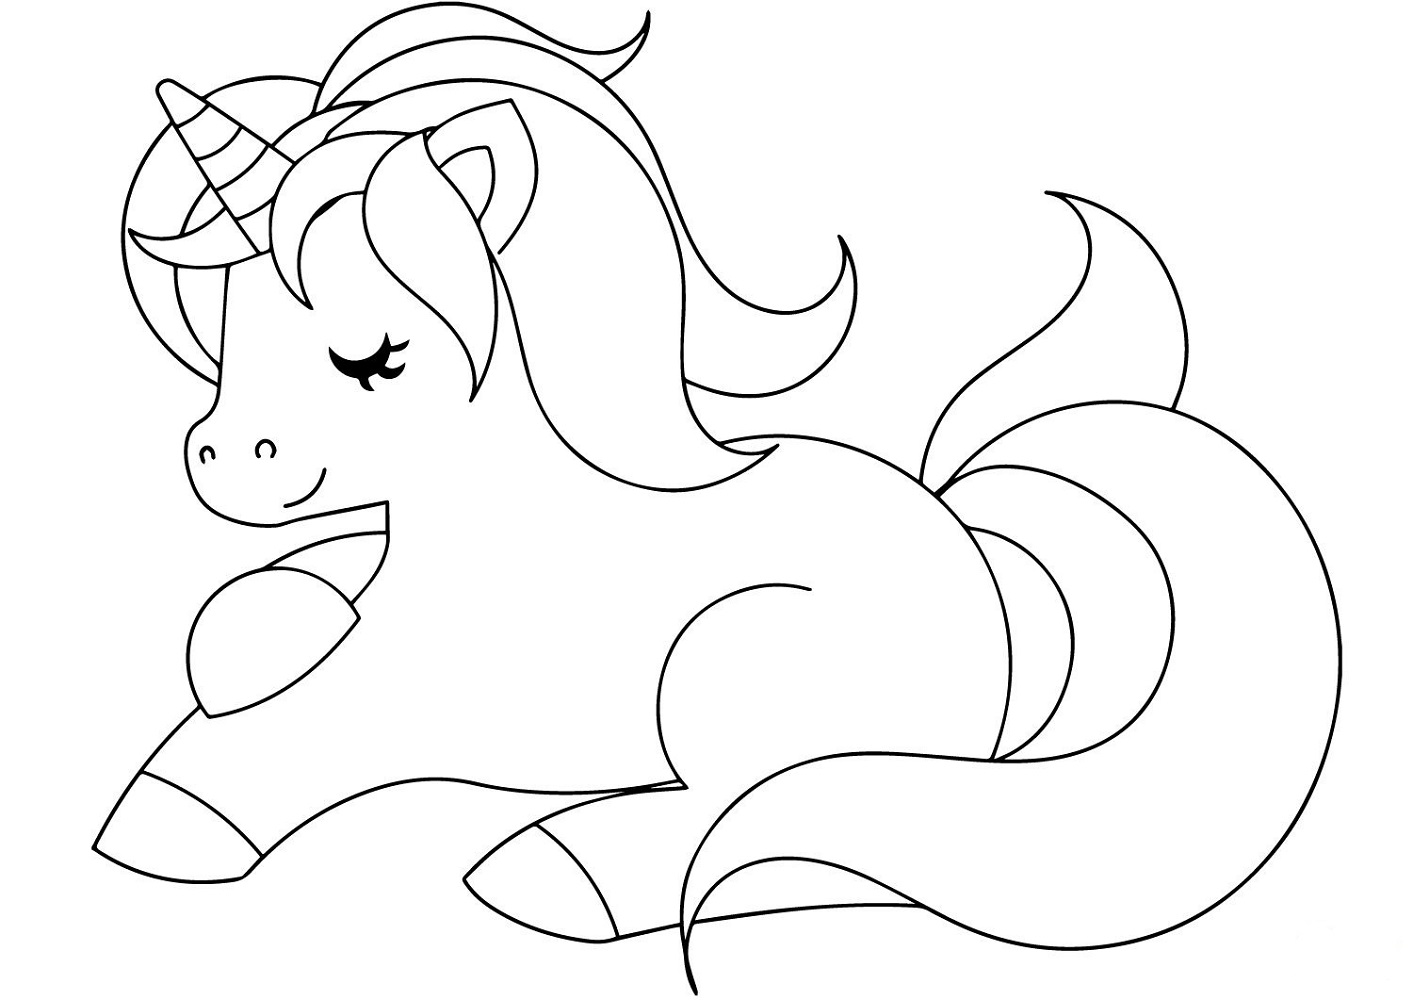 coloring for unicorn unicorns to download unicorns kids coloring pages coloring unicorn for